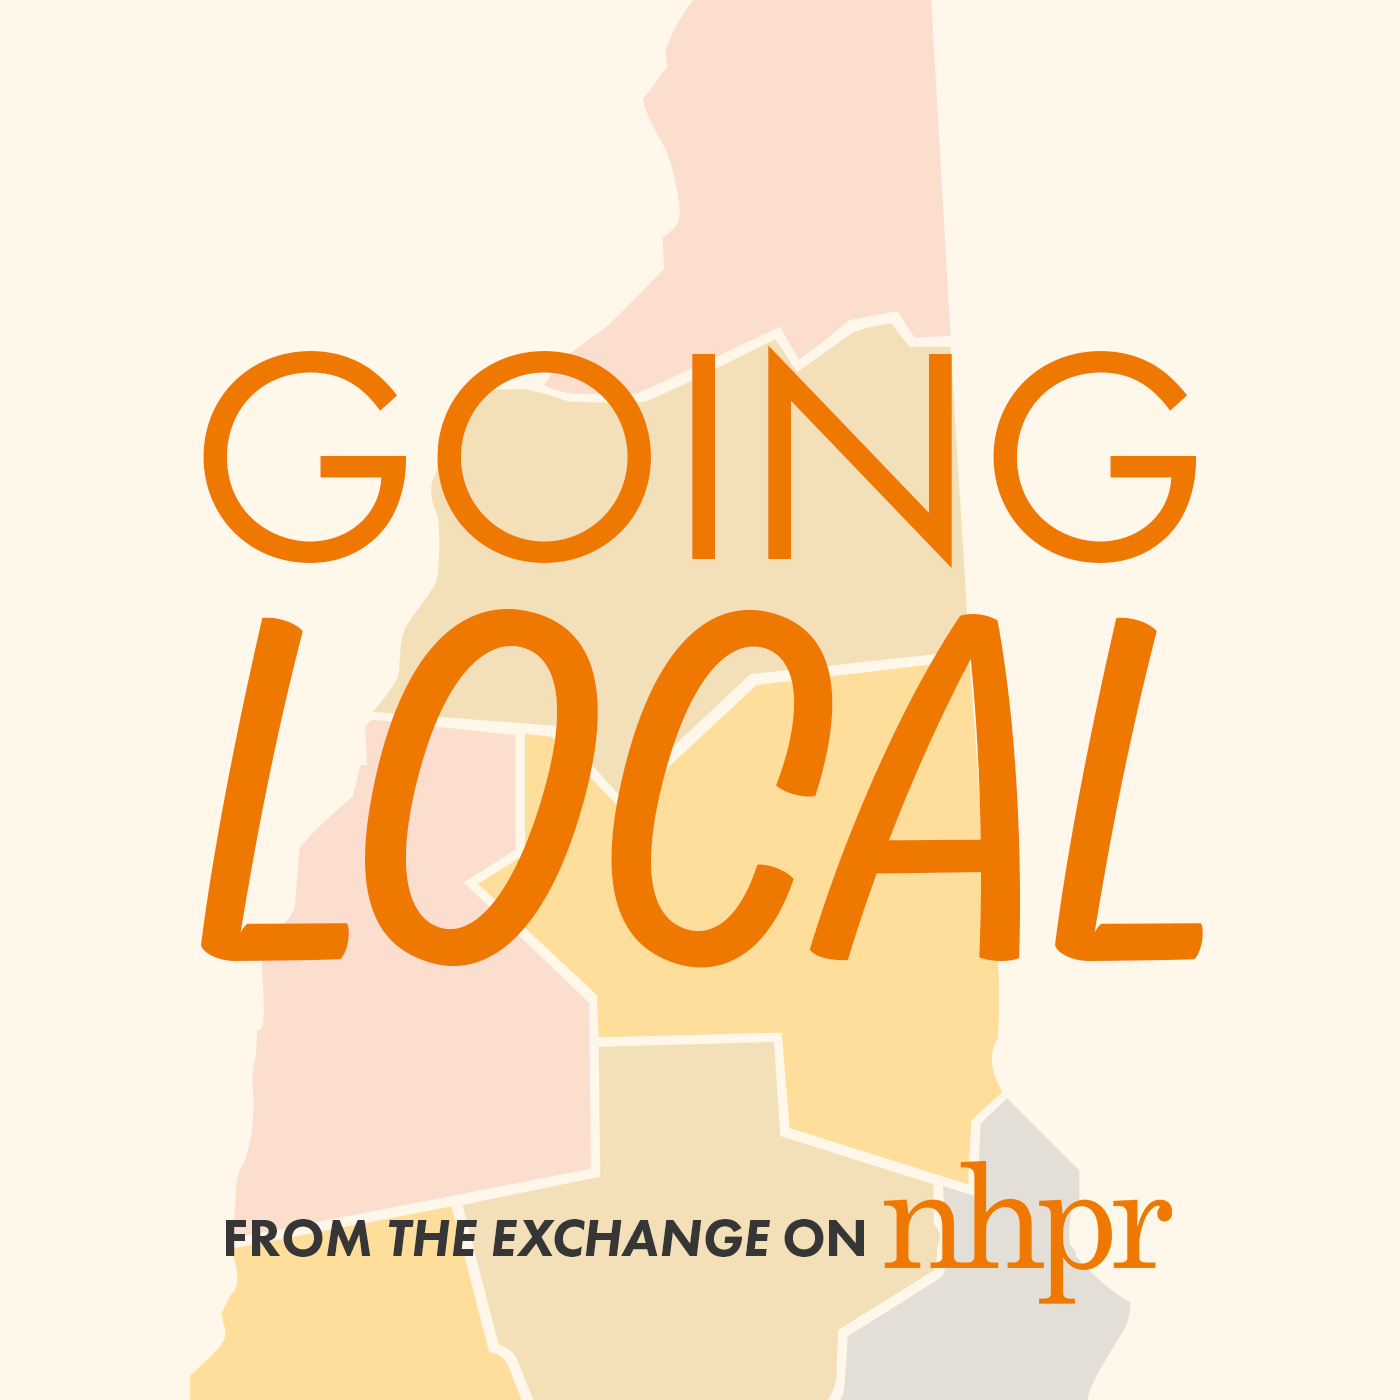 Going Local: A New Series from The Exchange Explores N.H.'s Regions